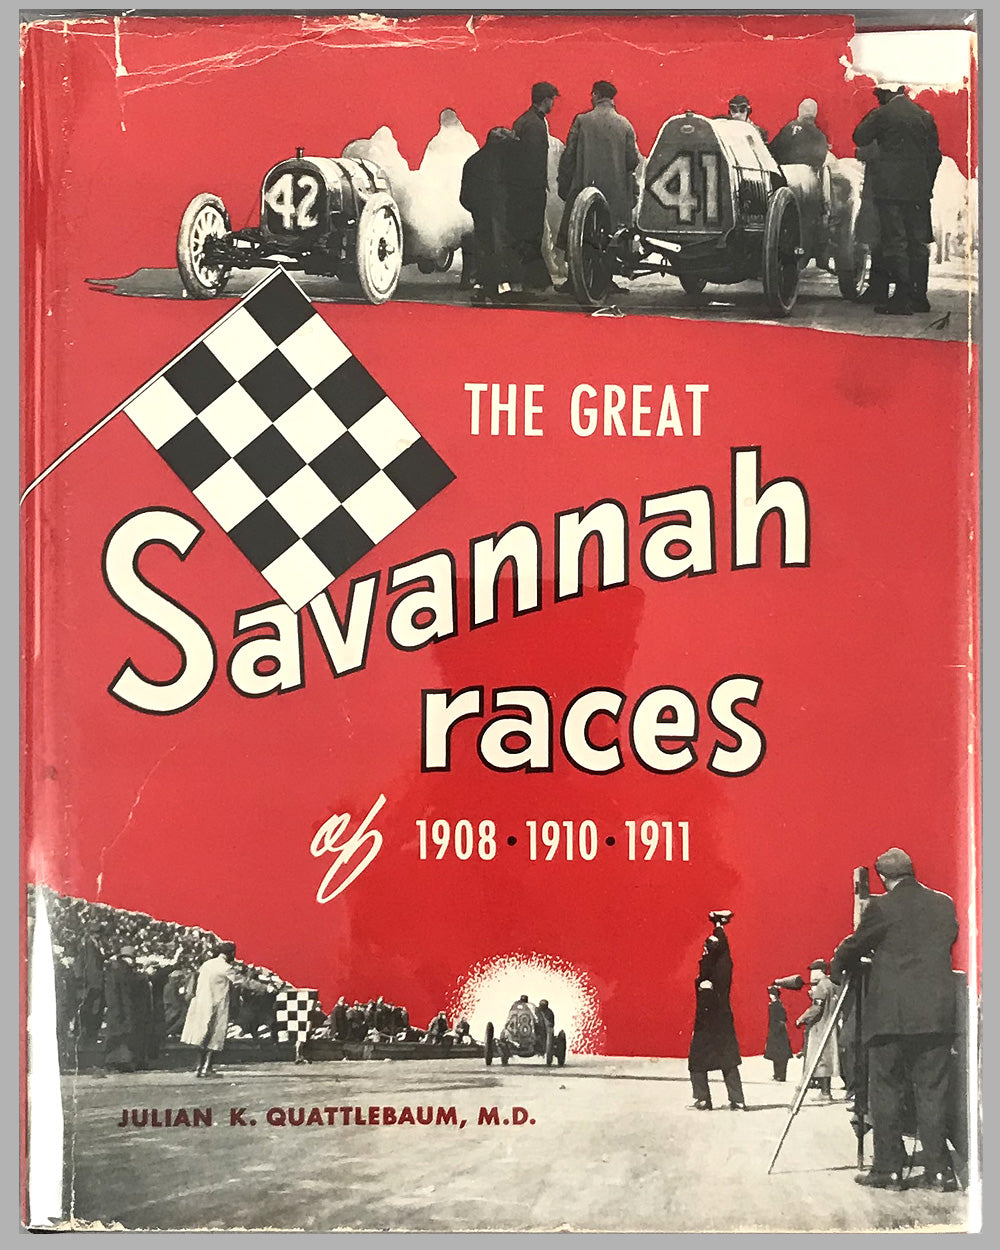 """The Great Savannah Races of 1908, 1910, 1911"" first edition book, 1957, by Julian Quattlebaum M.D."